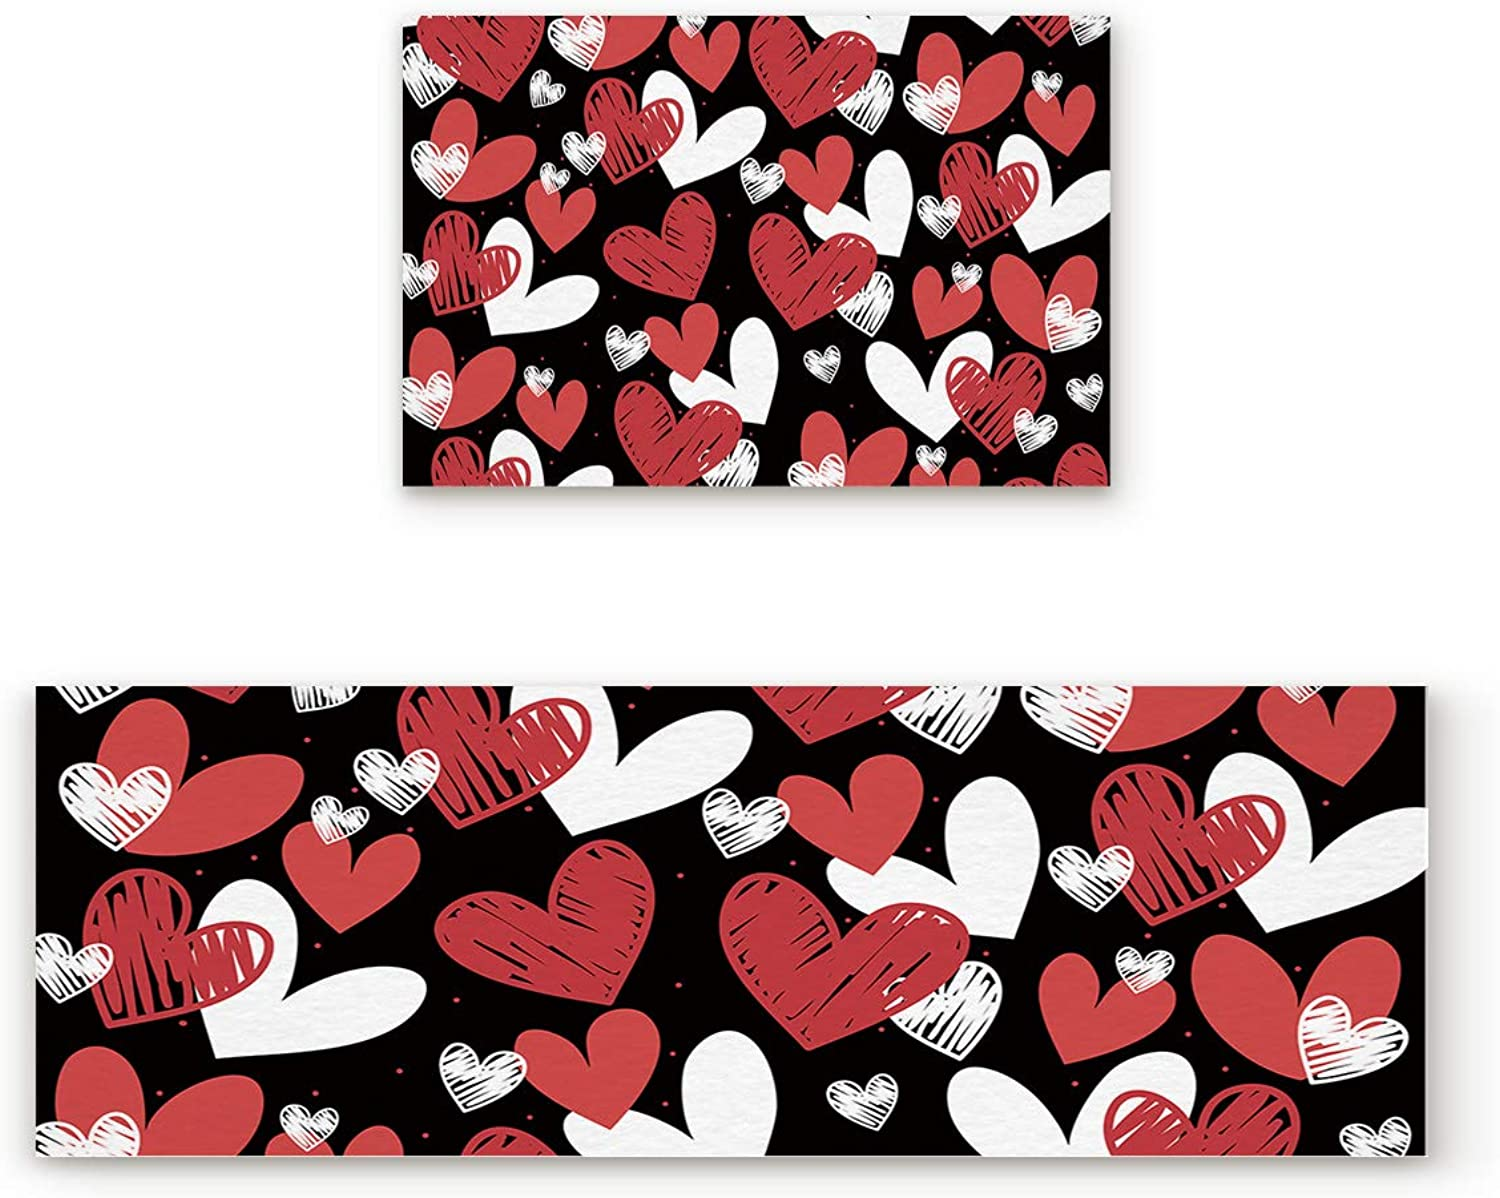 Aomike 2 Piece Non-Slip Kitchen Mat Rubber Backing Doormat Red White and Black Hand Drawn Hearts Pattern Runner Rug Set, Hallway Living Room Balcony Bathroom Carpet Sets (19.7  x 31.5 +19.7  x 47.2 )